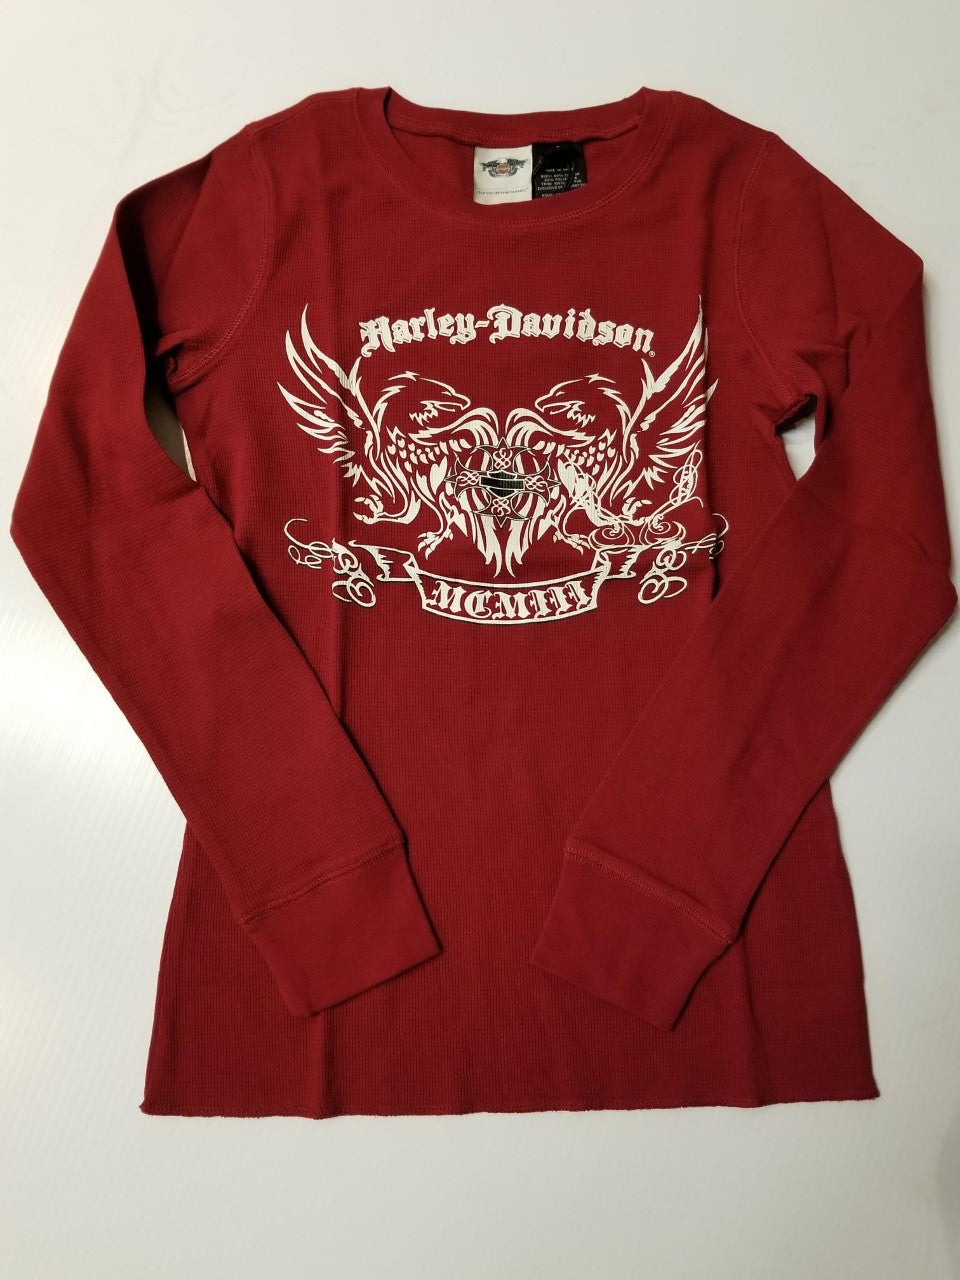 Harley-Davidson L/S thermal sleep shirt women's biking red